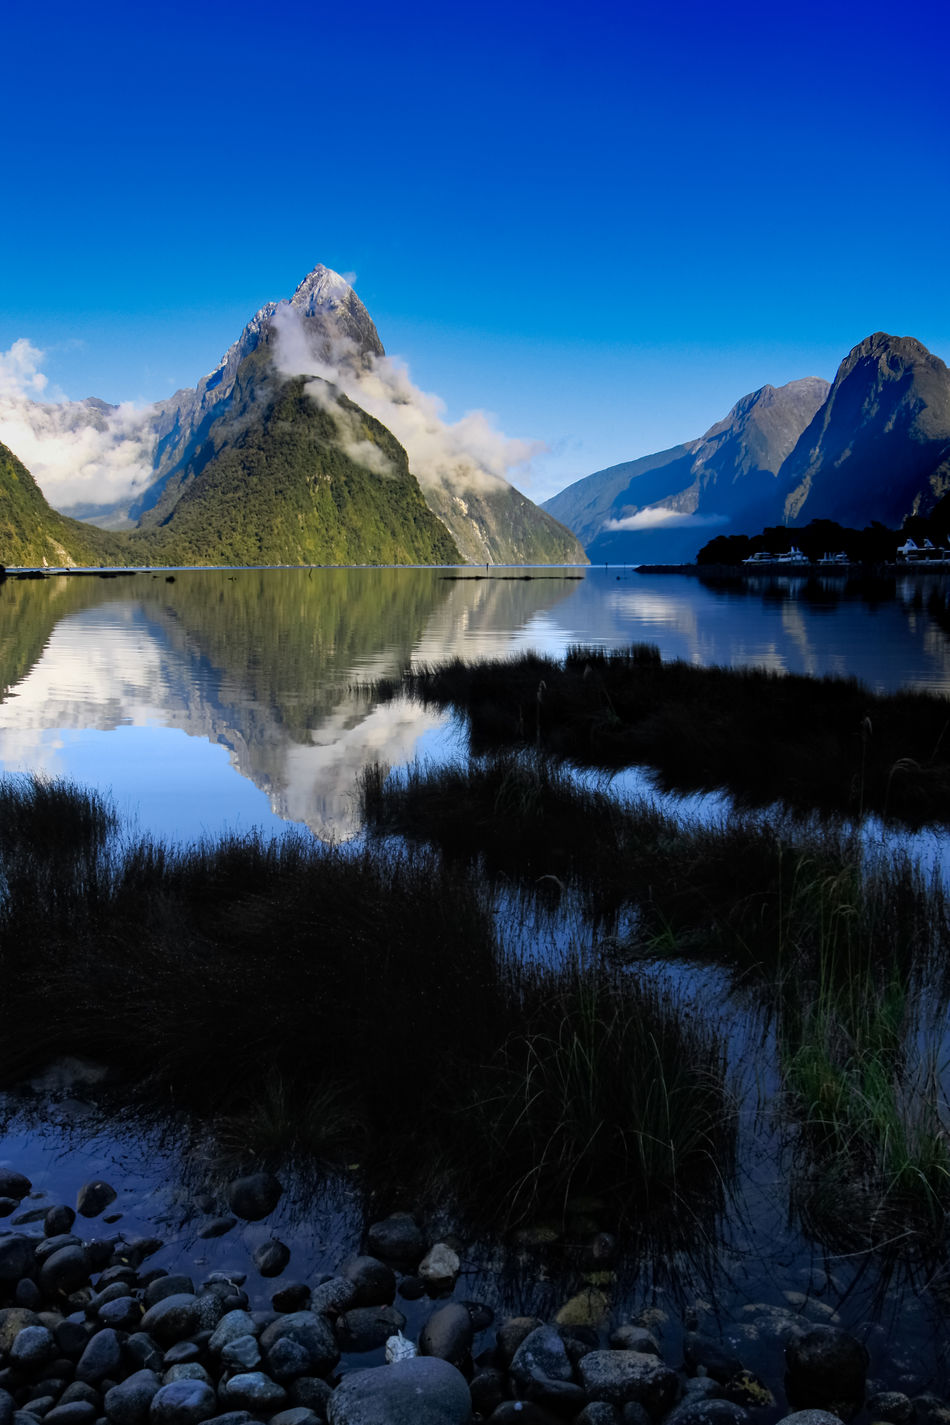 After several days of rain and snow, the clouds parted to a still glassy morning. Located in the south west of New Zealand's South Island, within Fiordland National Park Milford Sound has one of the worlds highest mean annual rainfalls of 6,412 mm (252 in). Te Wahipounamu World Heritage Site, New Zealand Love Life, Love Photography Blue Cold Temperature Day Grass Lake Mountain Mountain Range Nature Outdoors Scenics Sky Snow Tranquil Scene Tranquility Travel Destinations Water Winter Fiordland Milford Sound New Zealand Landscape Mitre Peak Reflection Dawn Snowcapped Mountain Peak